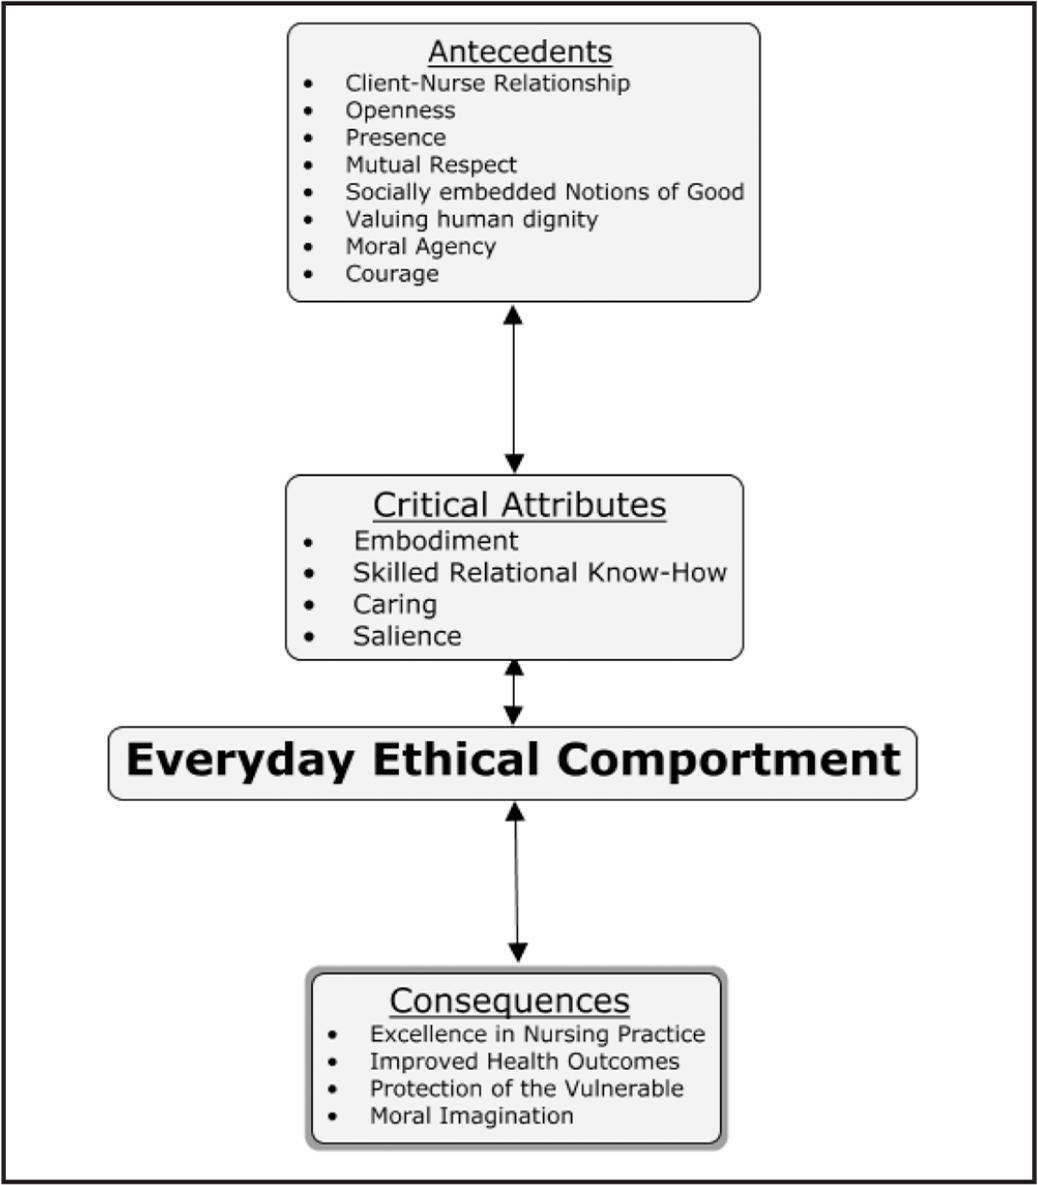 Visual representation of conceptualized everyday ethical comportment.